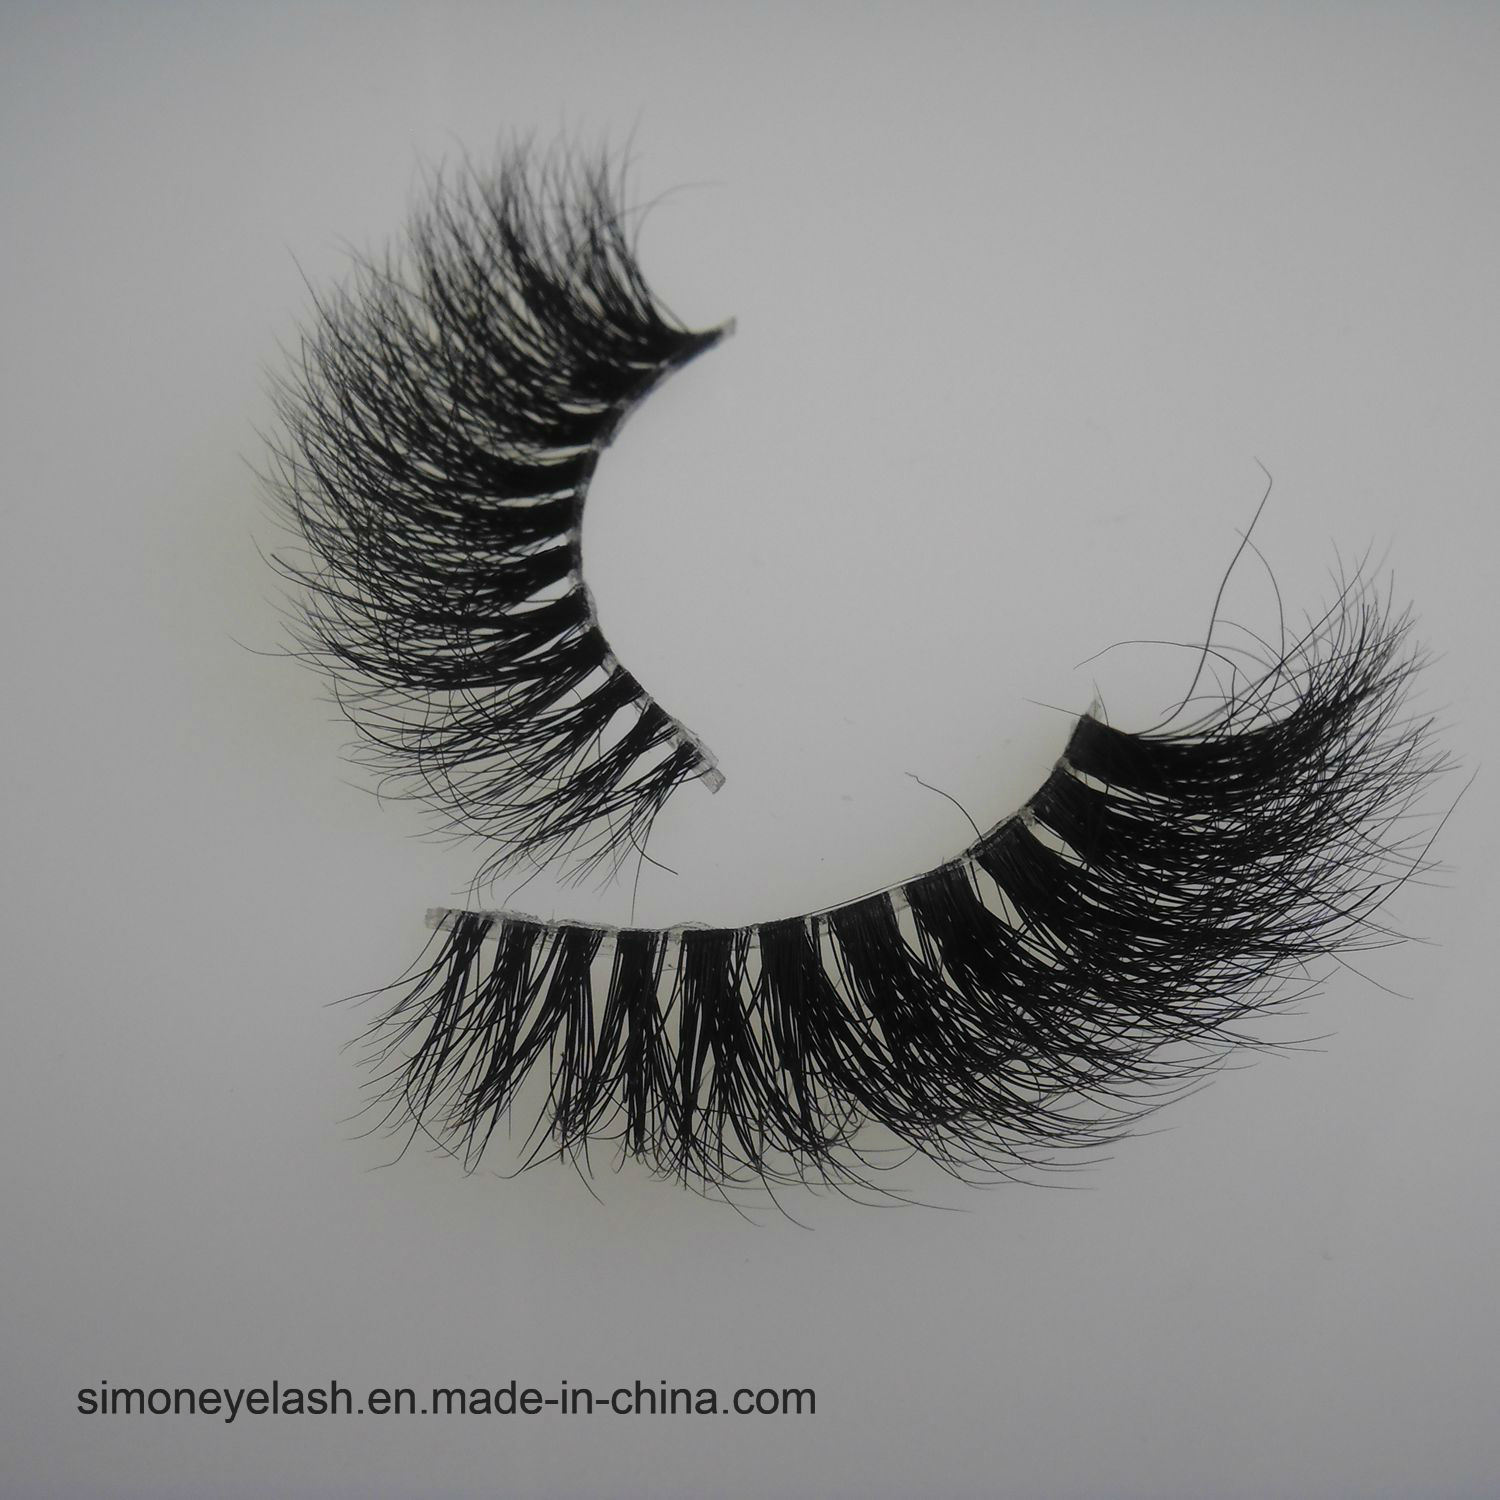 Mink Hair Transparent Plastic Terrier Eye Lashes Strengthen 3D Eyelash